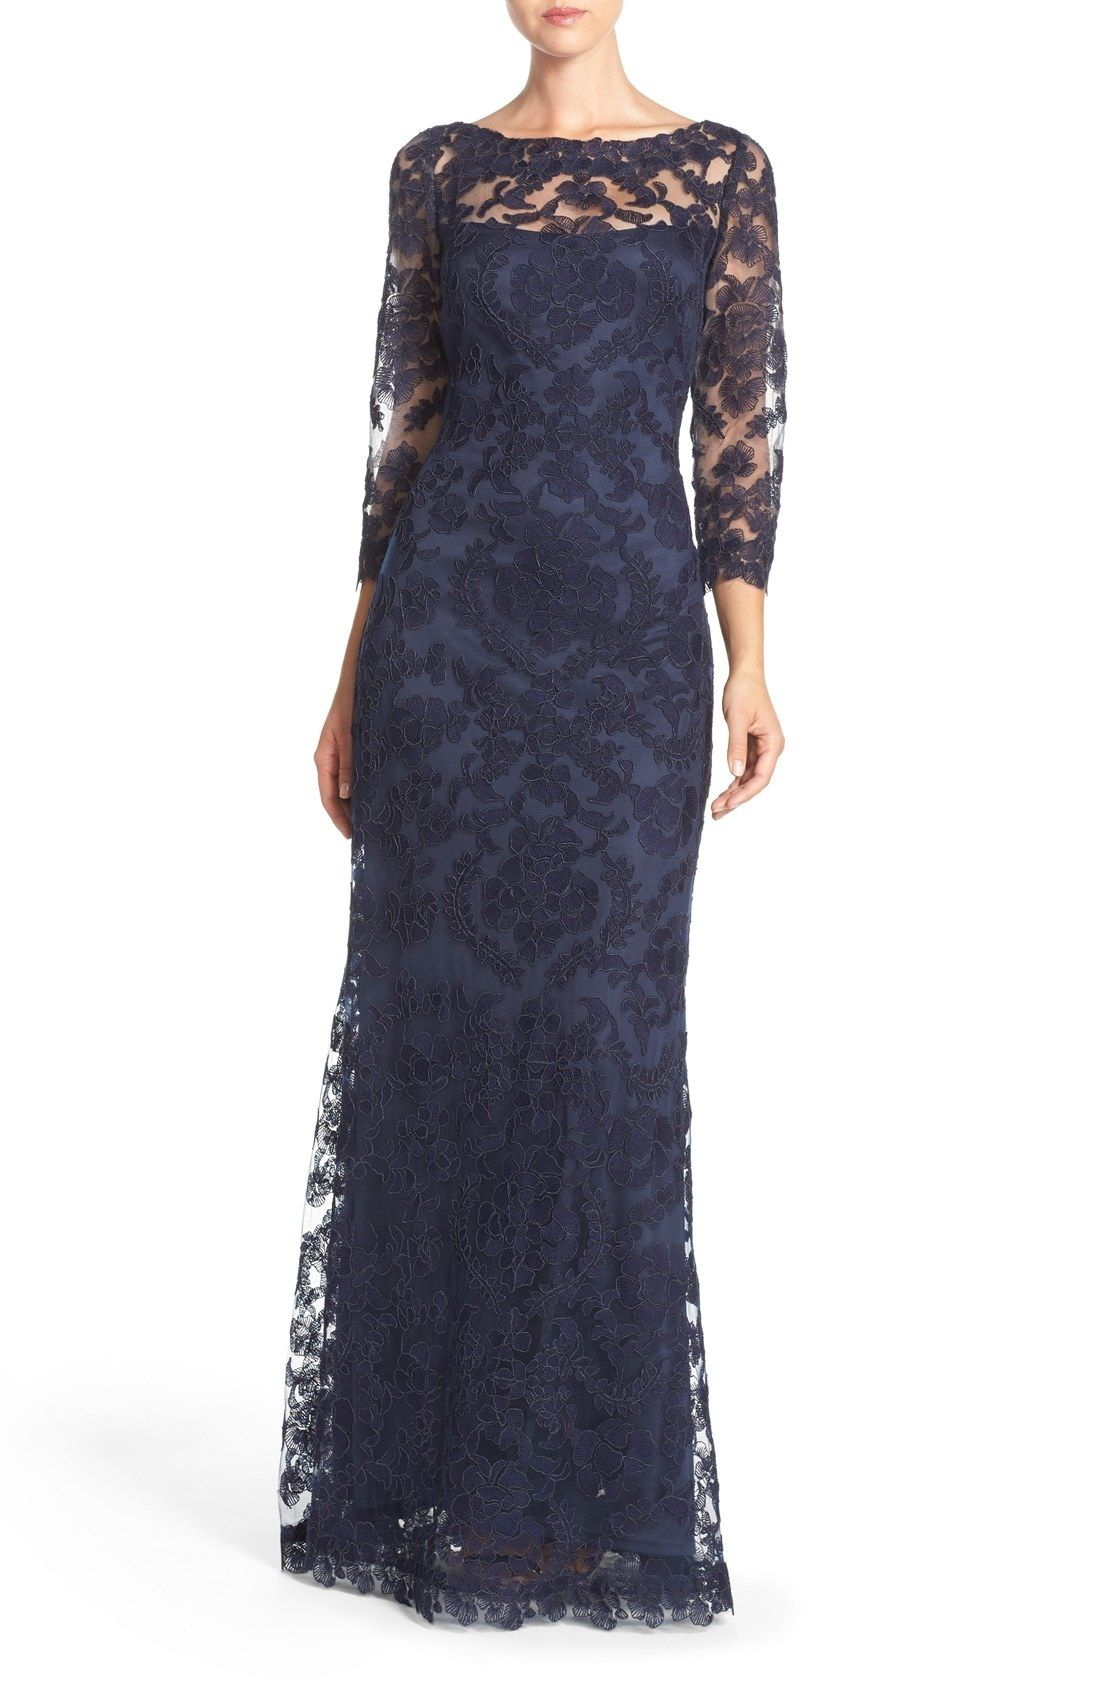 Mother of the bride wedding dresses nordstrom  Tadashi Shoji Embroidered Tulle Gown available at Nordstrom